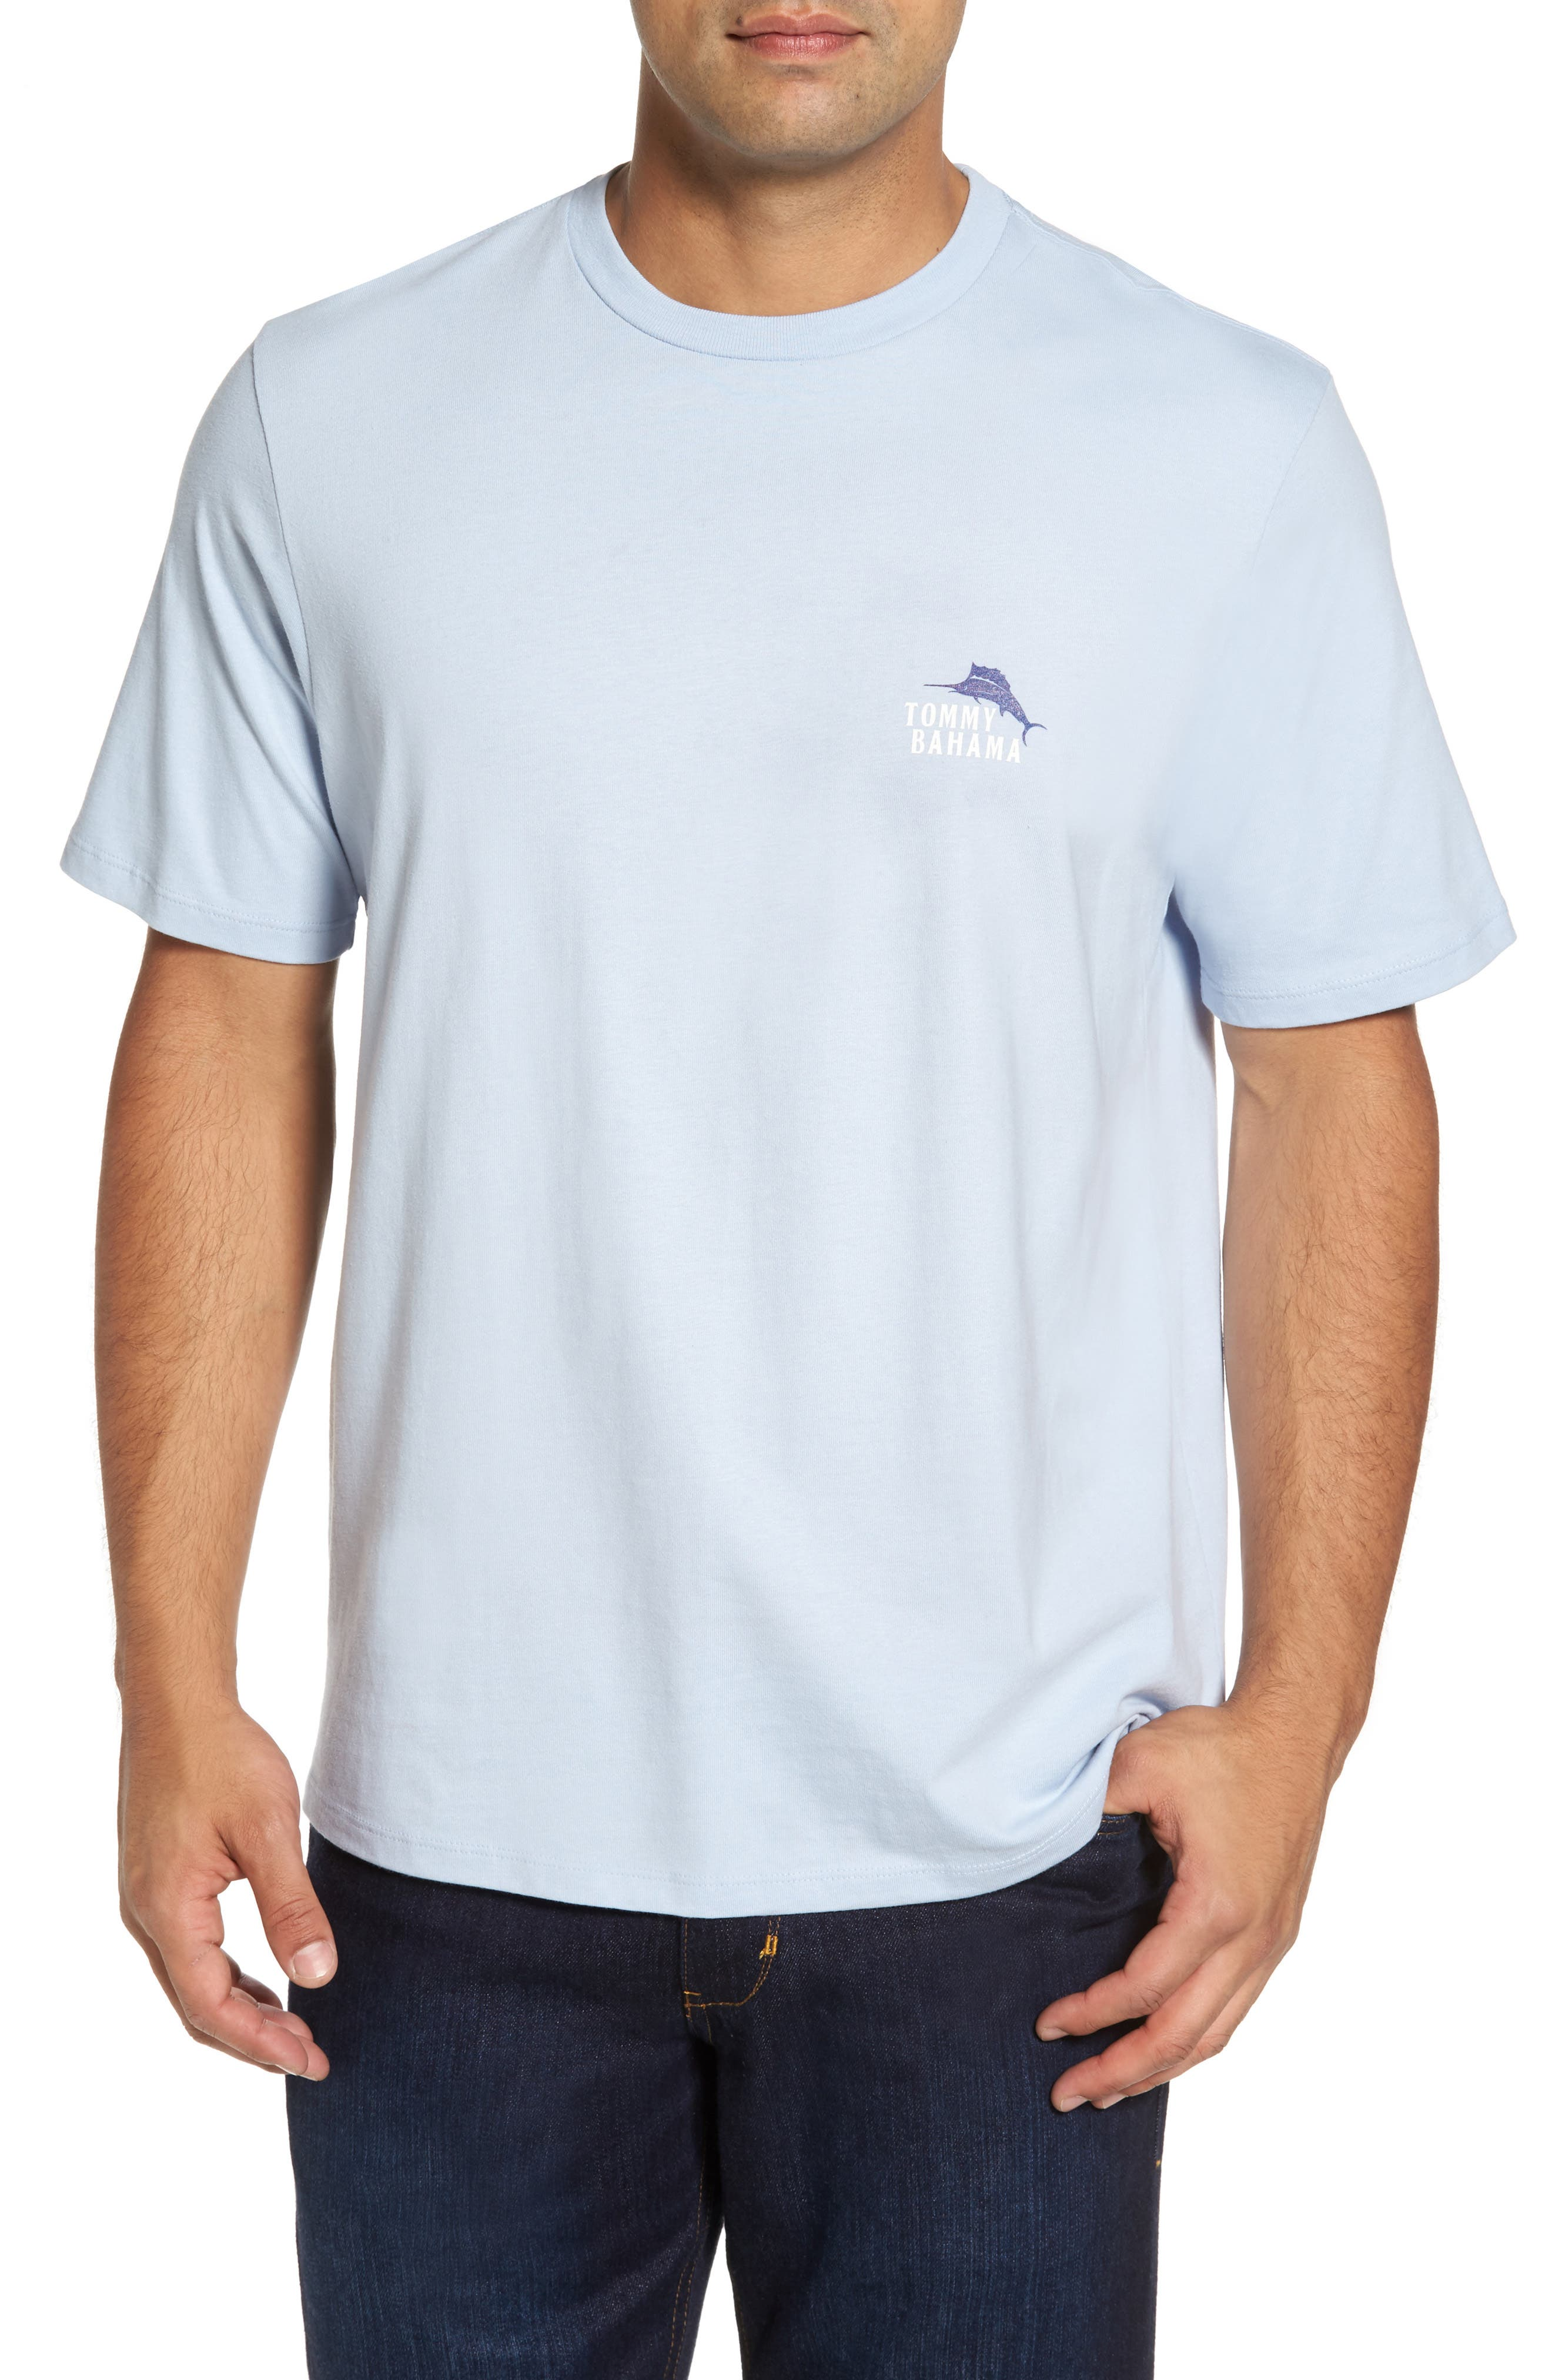 Alternate Image 1 Selected - Tommy Bahama Casting Call Standard Fit T-Shirt